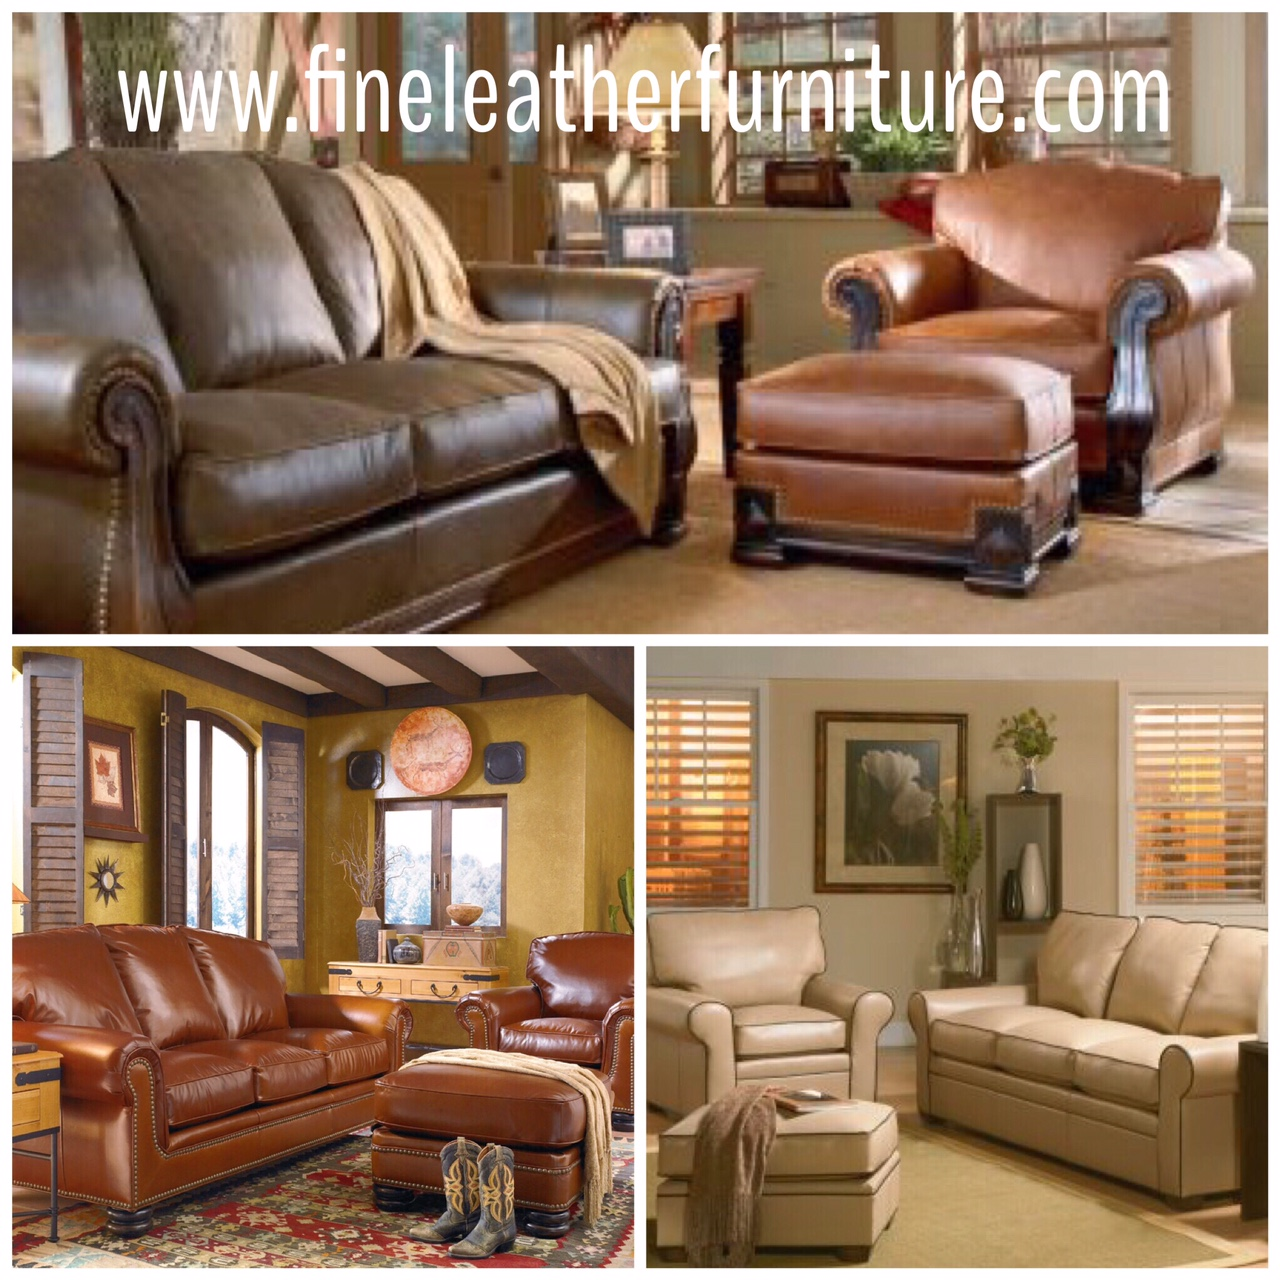 Home Furniture For Less: Classic Leather Furniture For Less